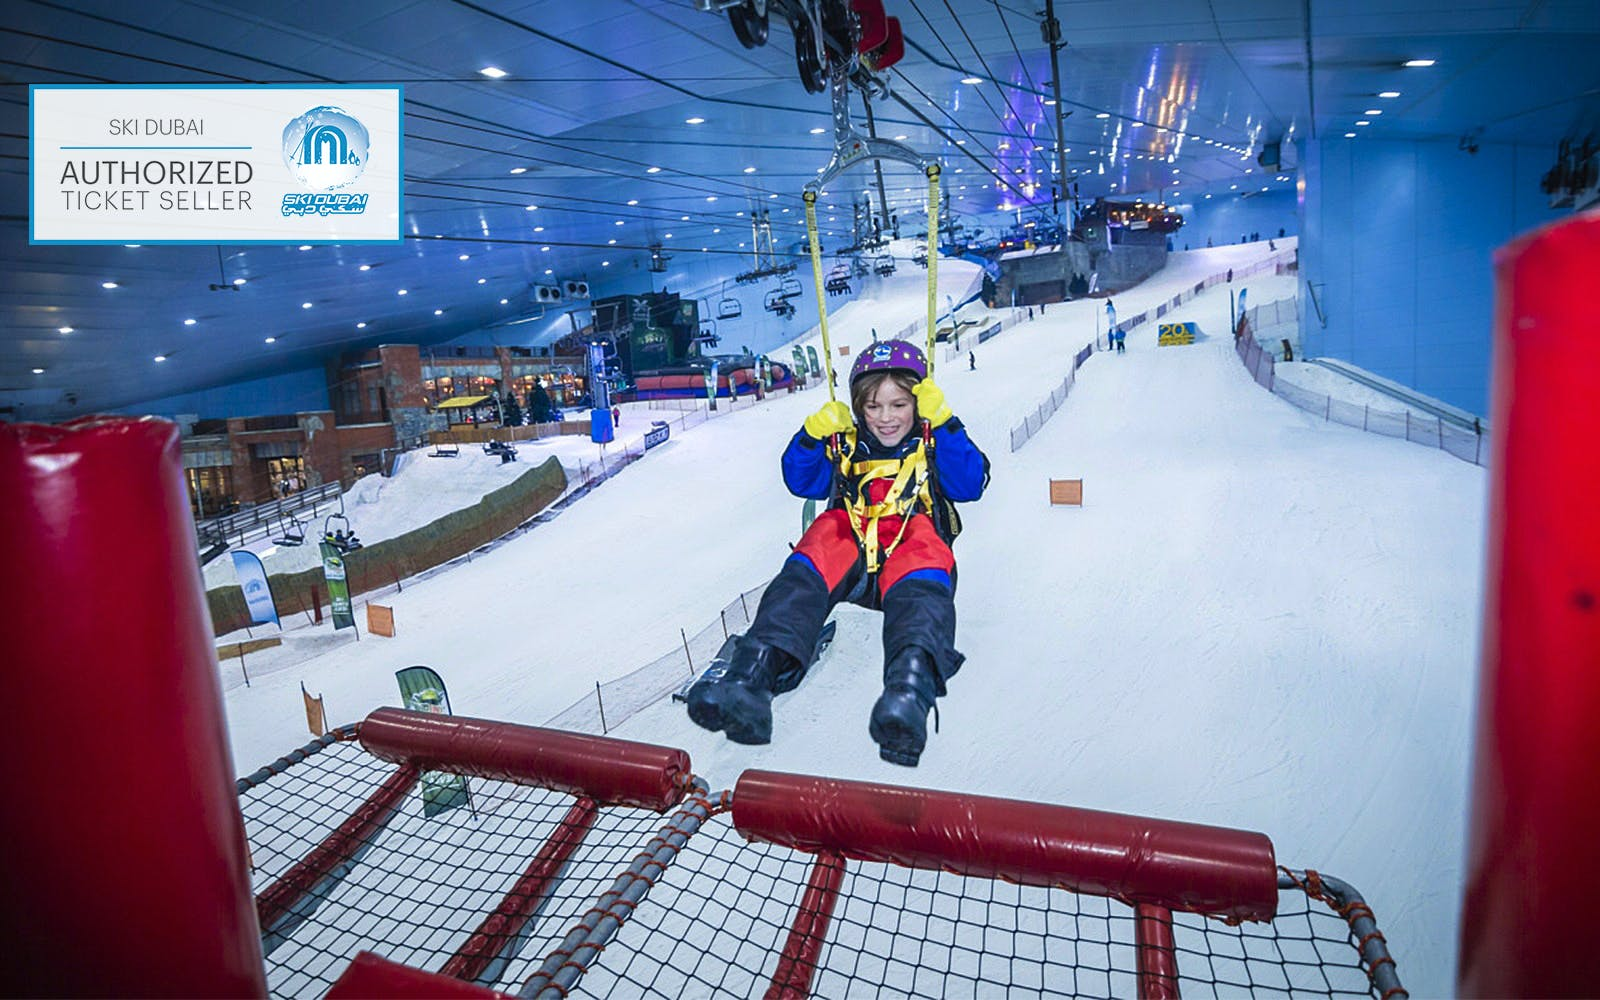 Ski Dubai: Snow Bullet Ride